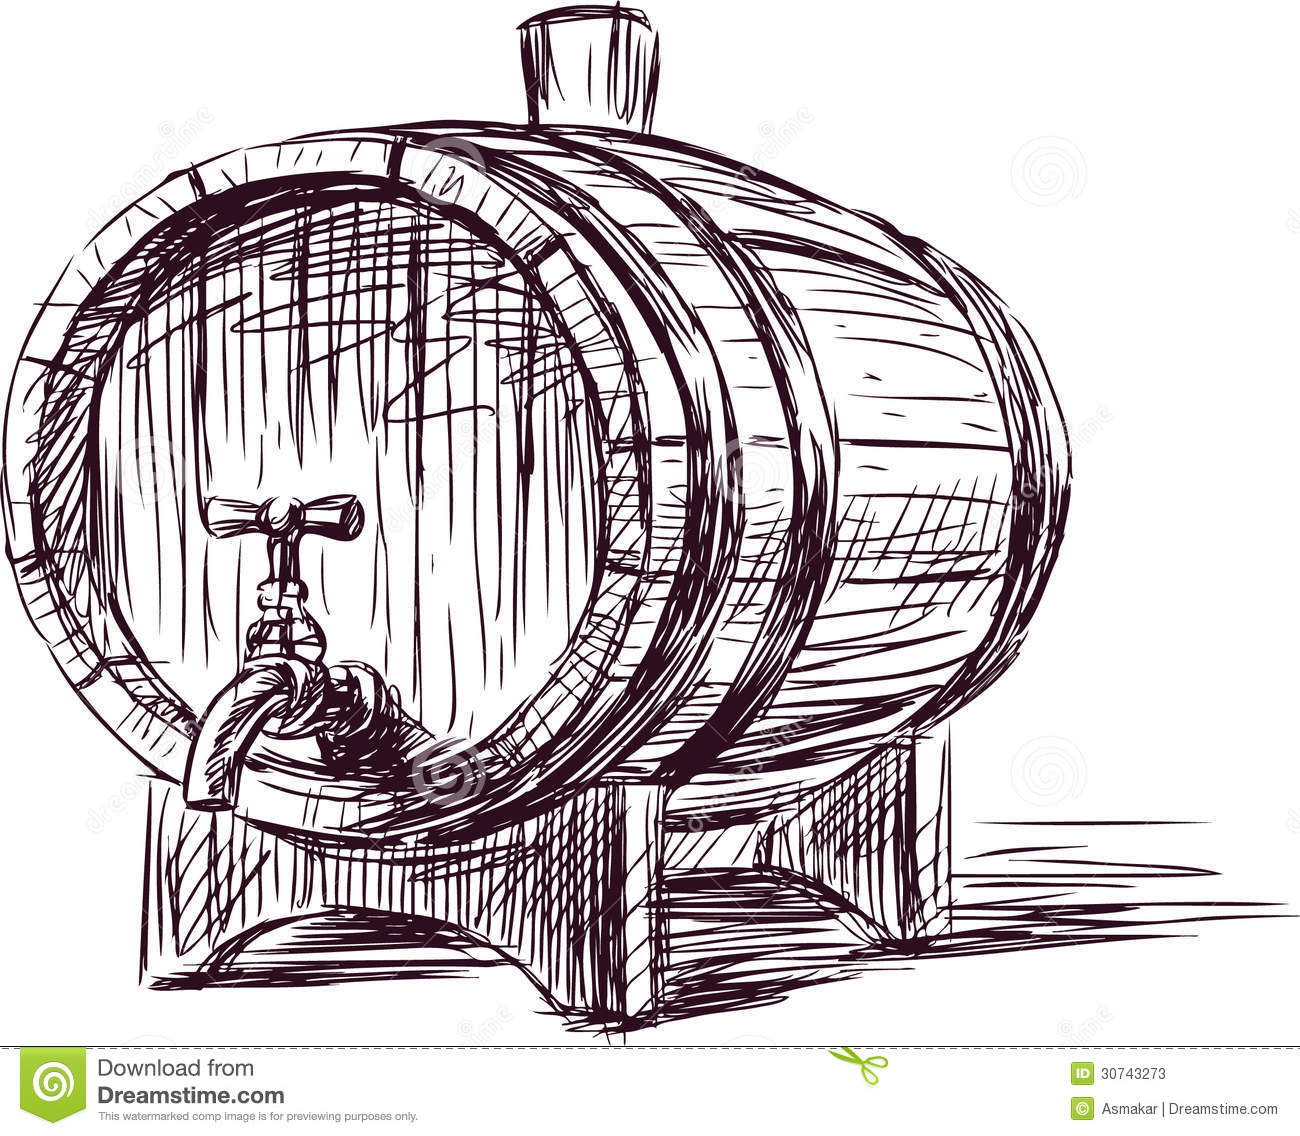 Wine cask stock photos image 30743273 - Barriles de vino ...